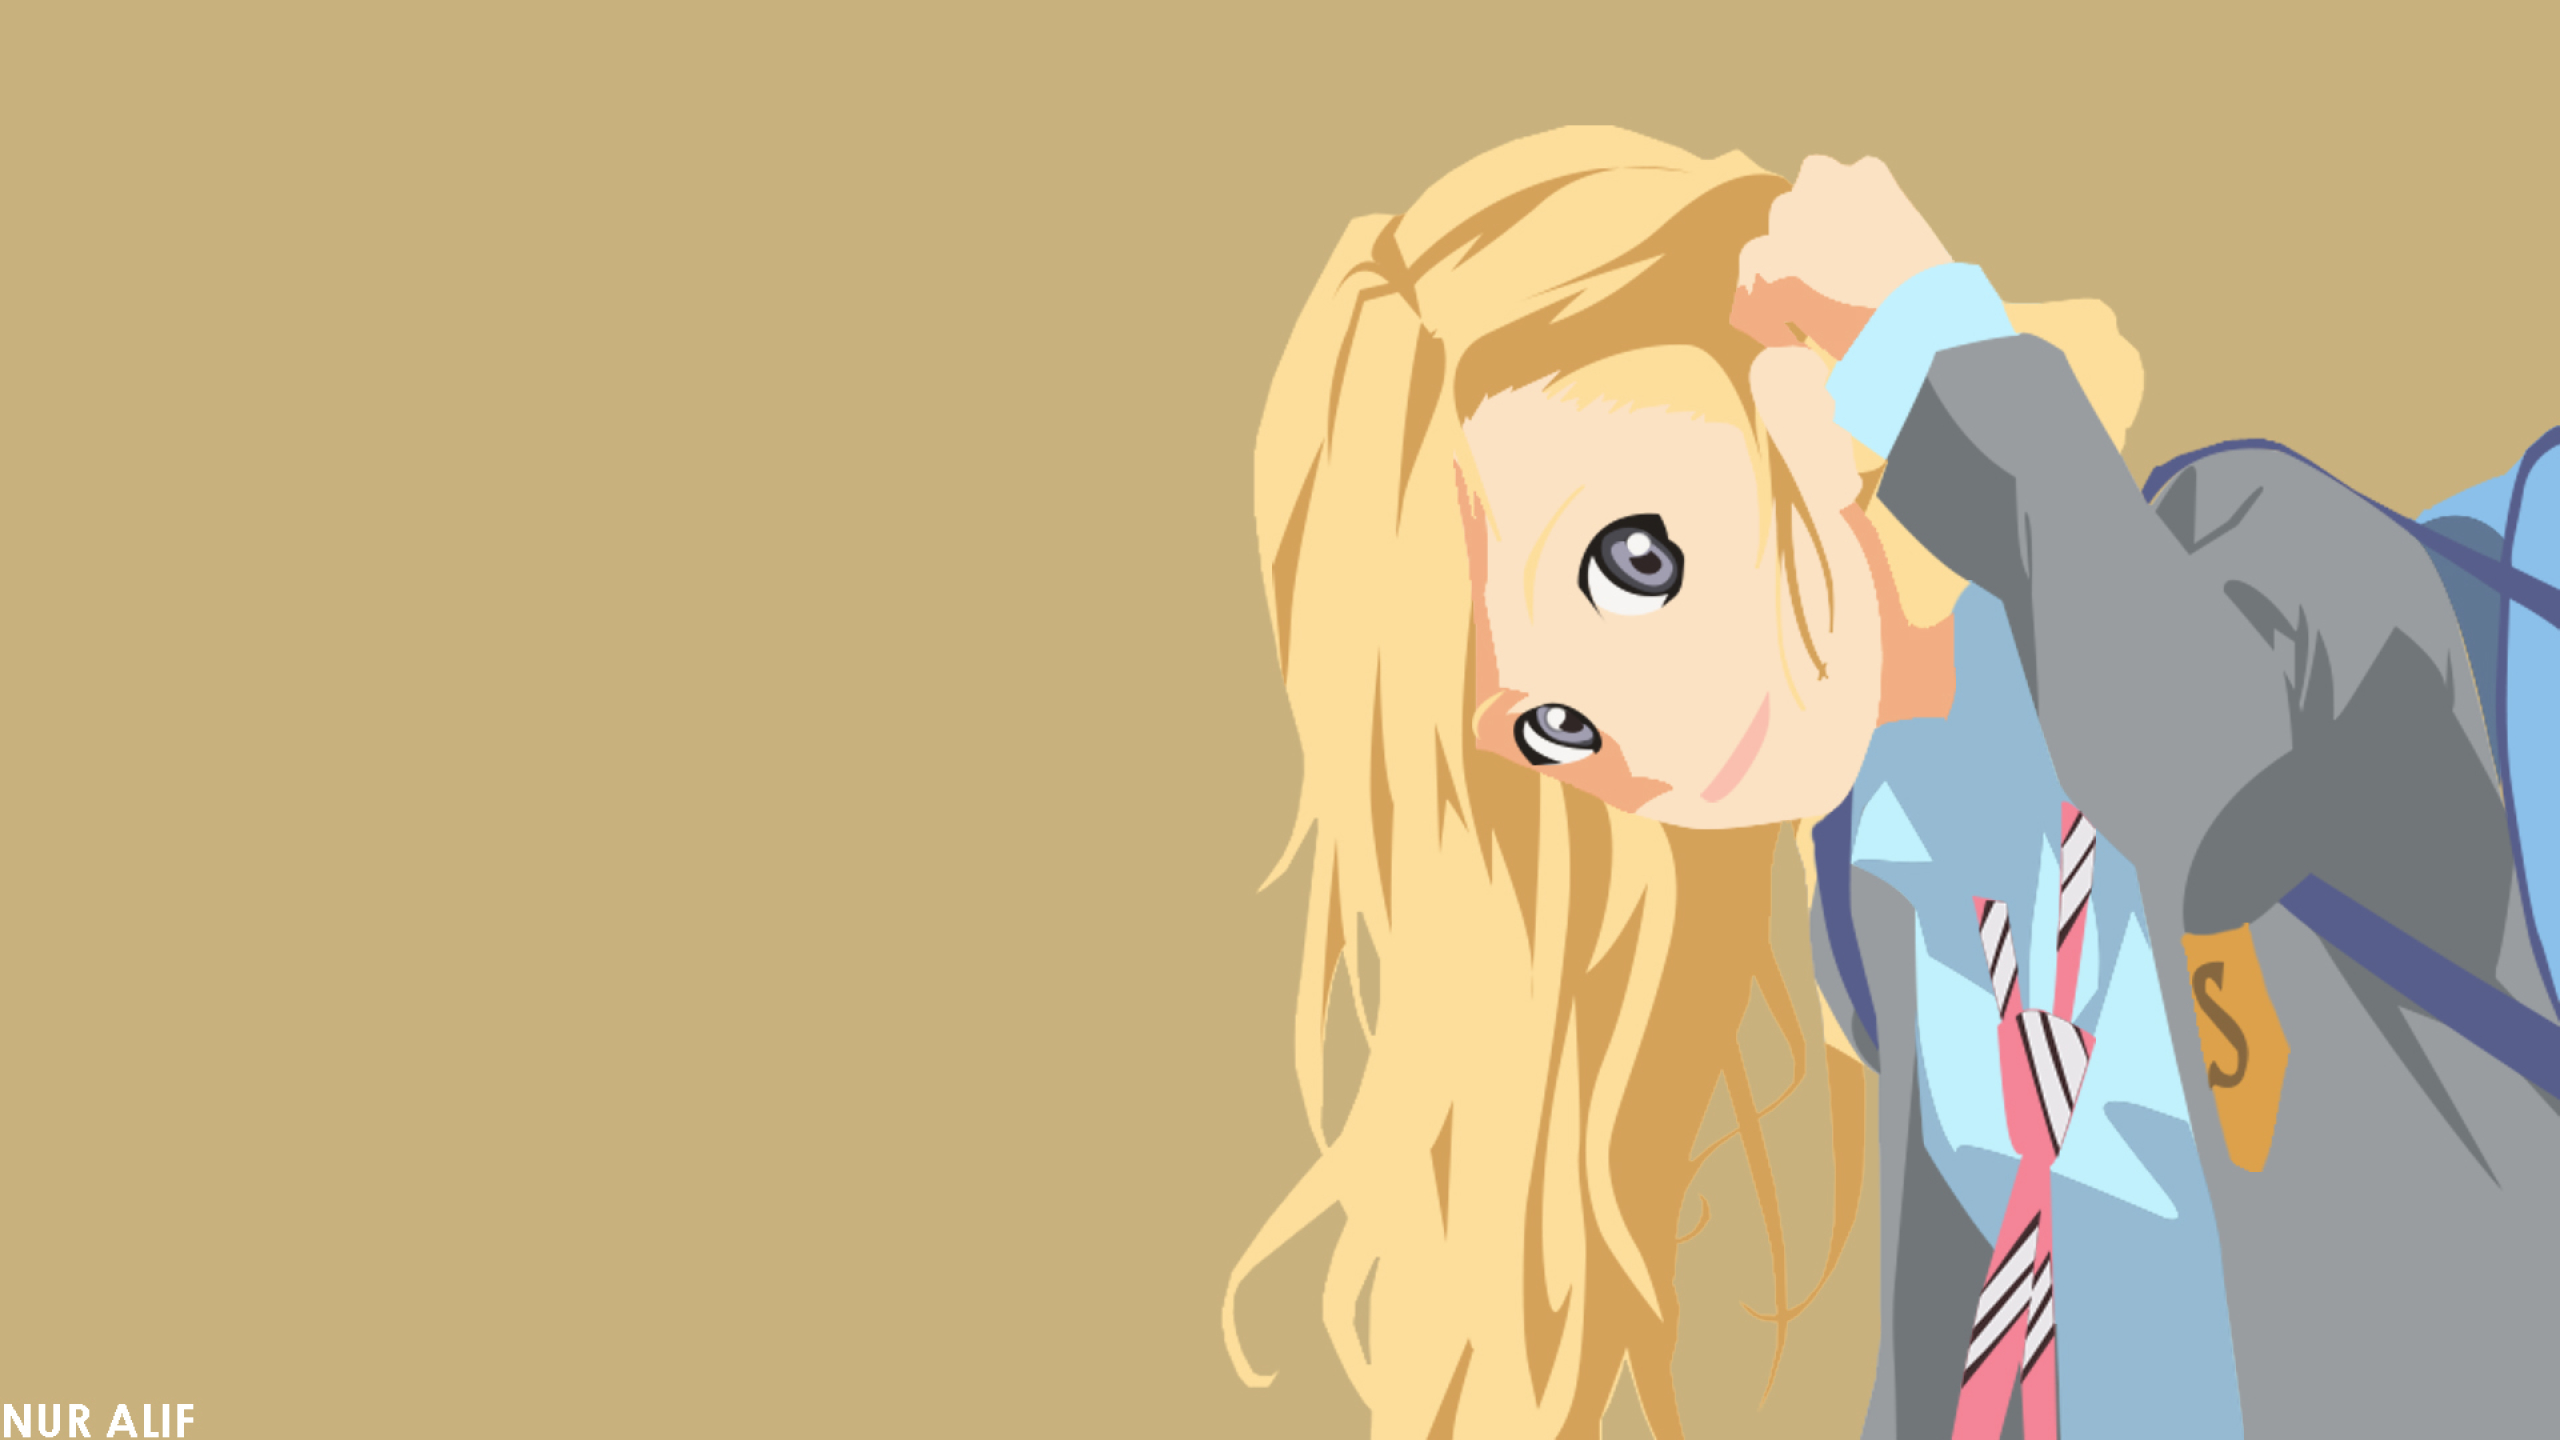 2560x1440 Kaori Miyazono 1440p Resolution Wallpaper Hd Anime 4k